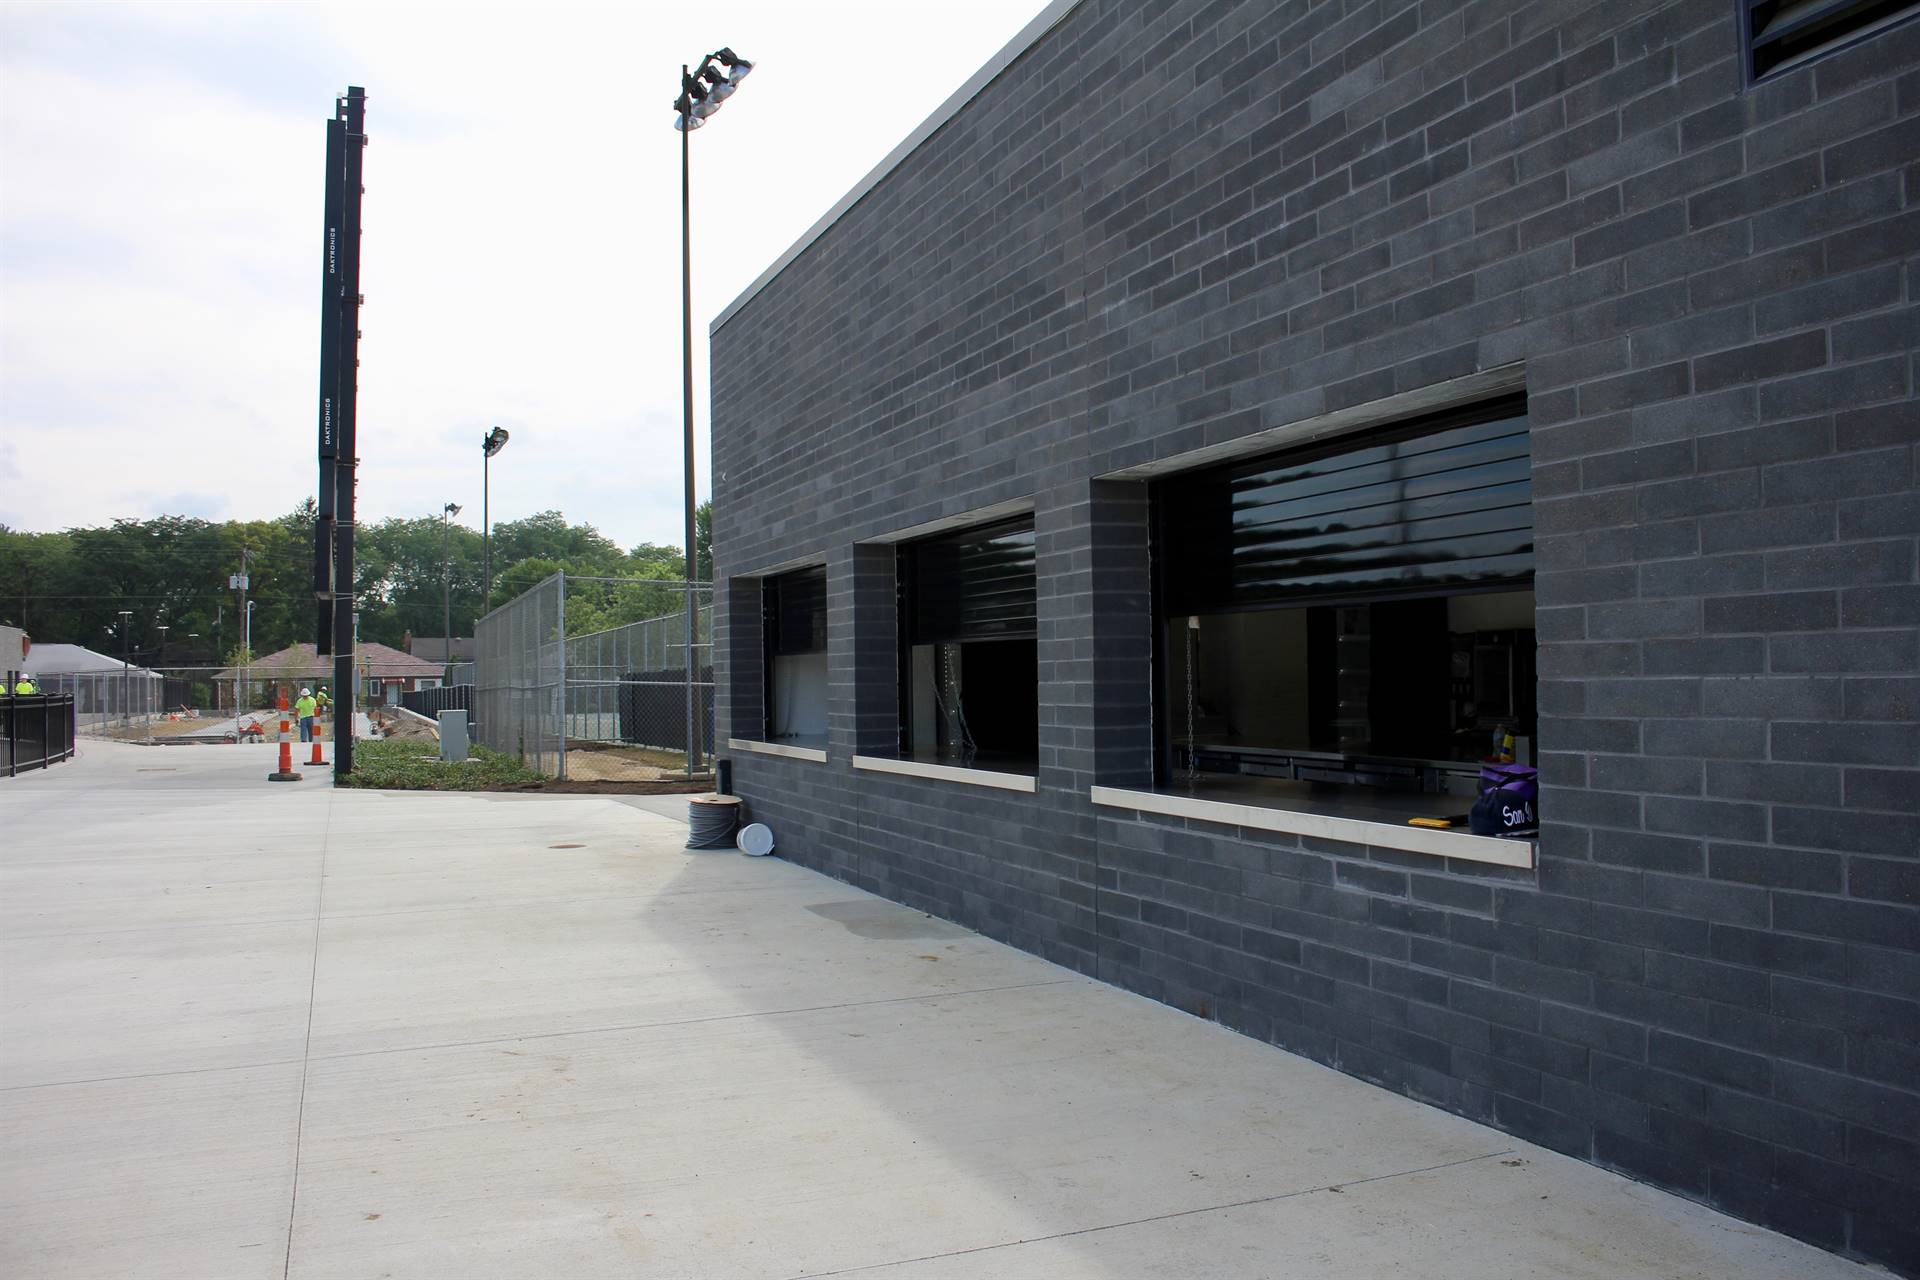 Home concession stand